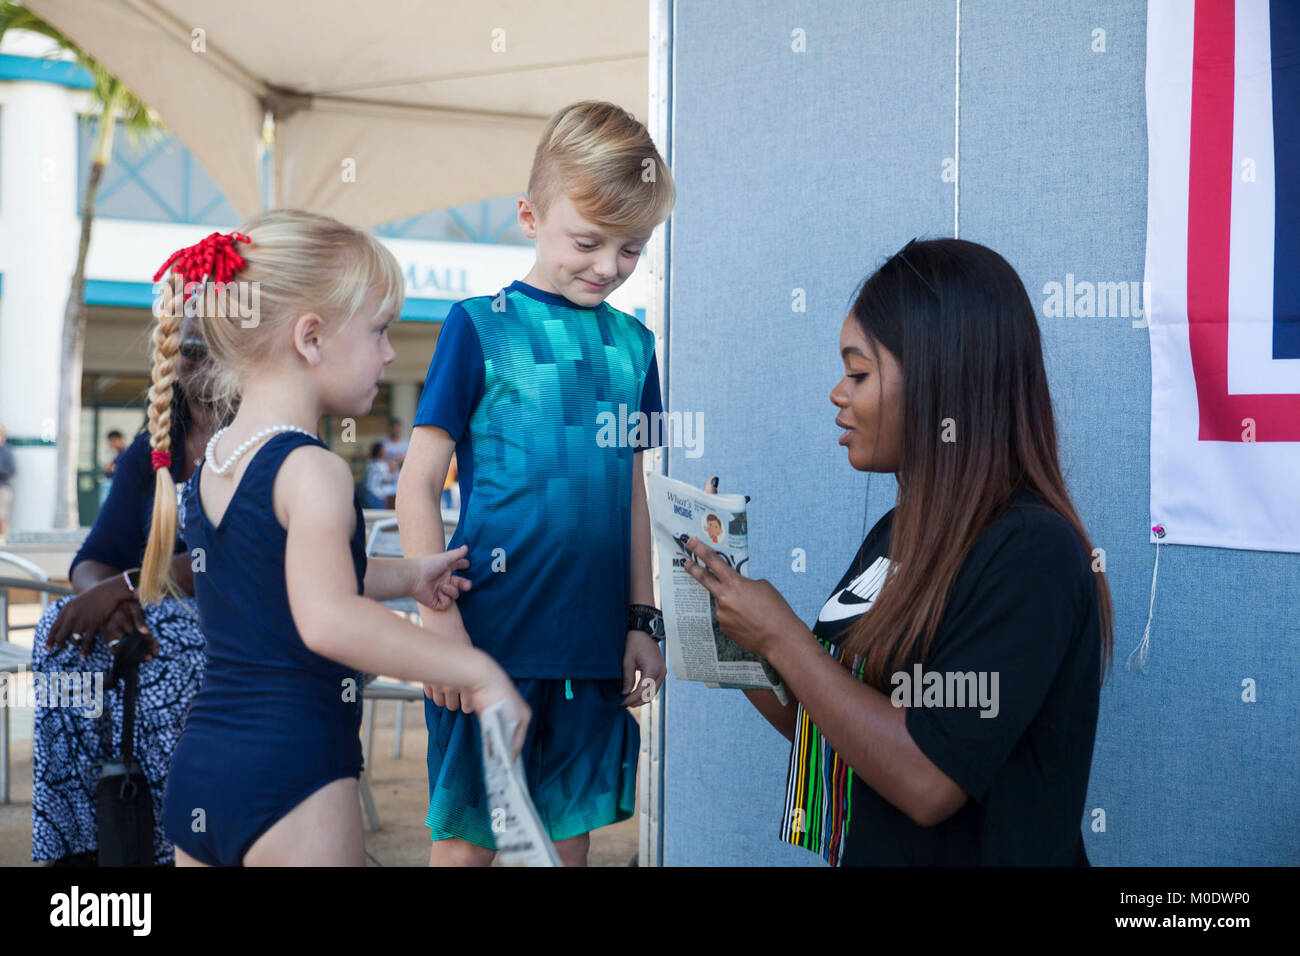 Gabrielle gabby douglas signs autographs during a united services gabrielle gabby douglas signs autographs during a united services organization uso meet and greet event at the mokapu mall marine corps base hawaii m4hsunfo